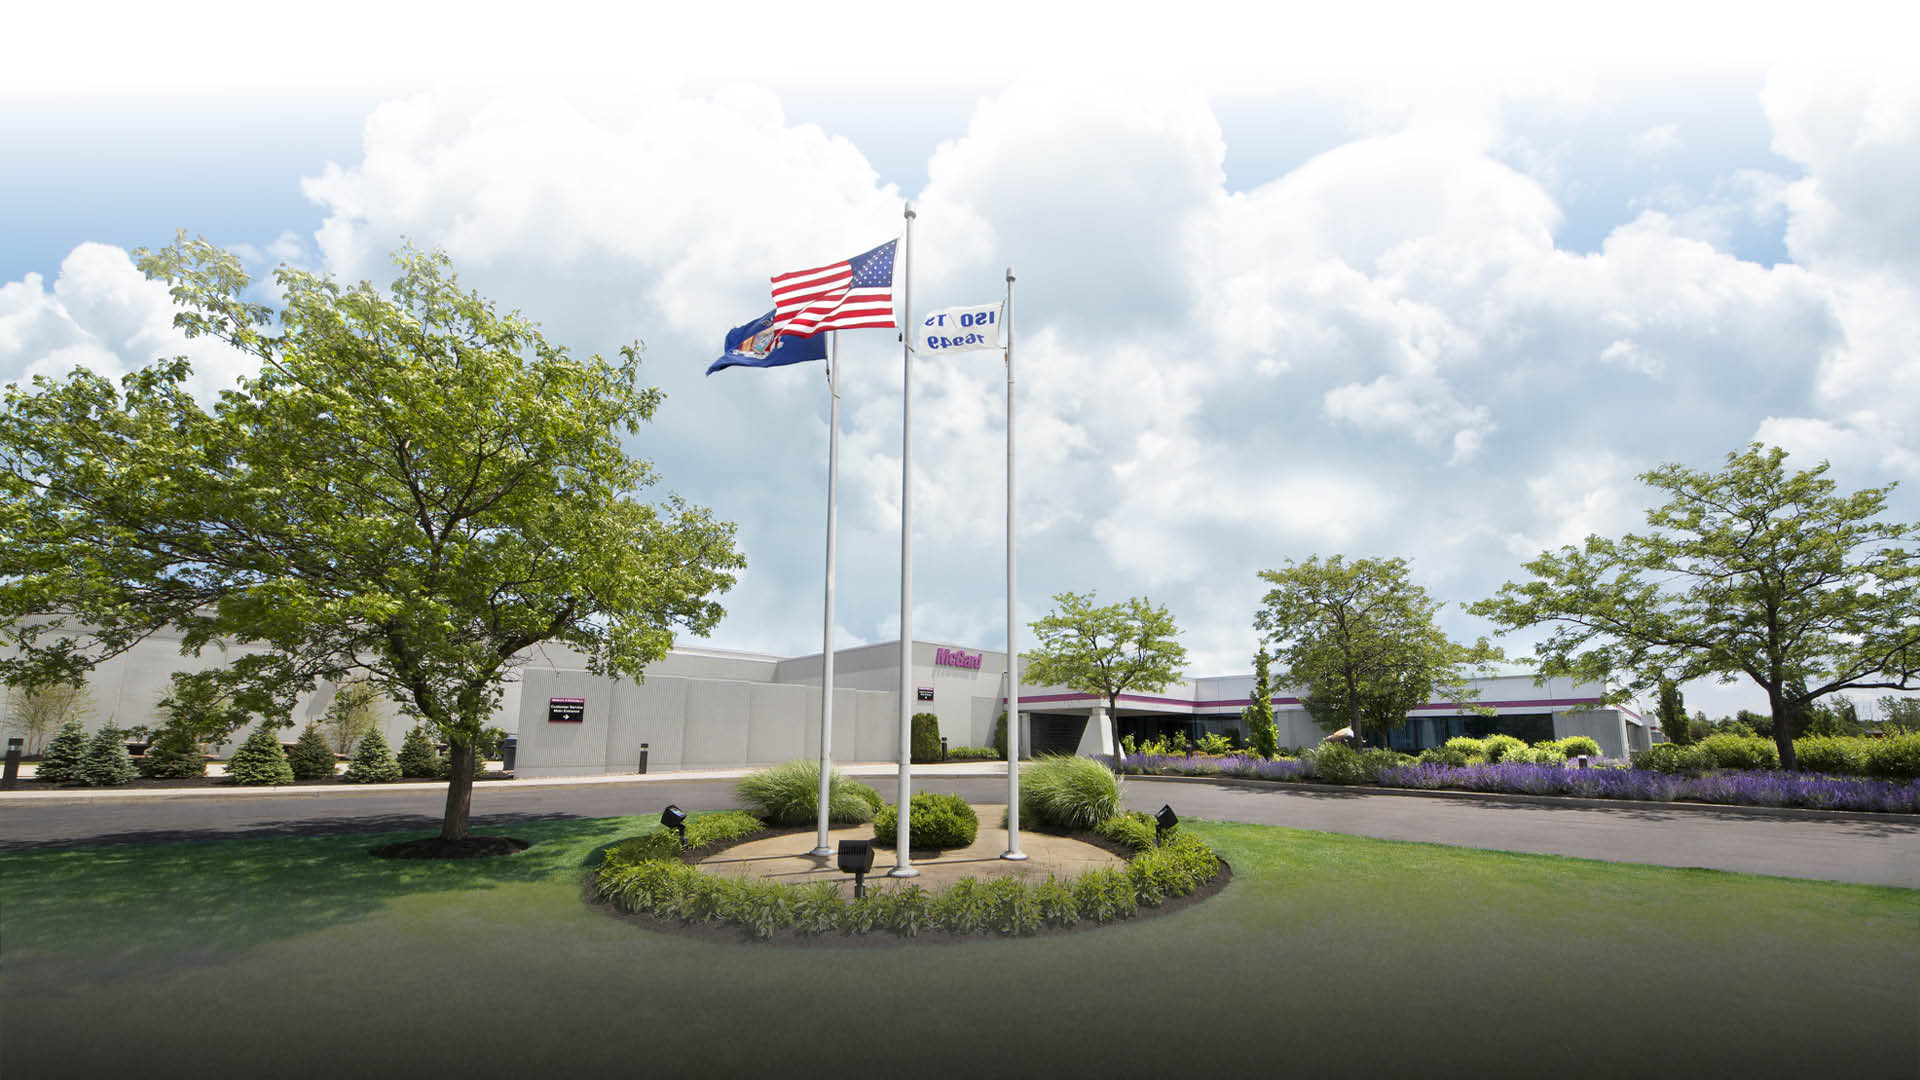 Main-plant-McGard-USA- company-building- production-manufacturing